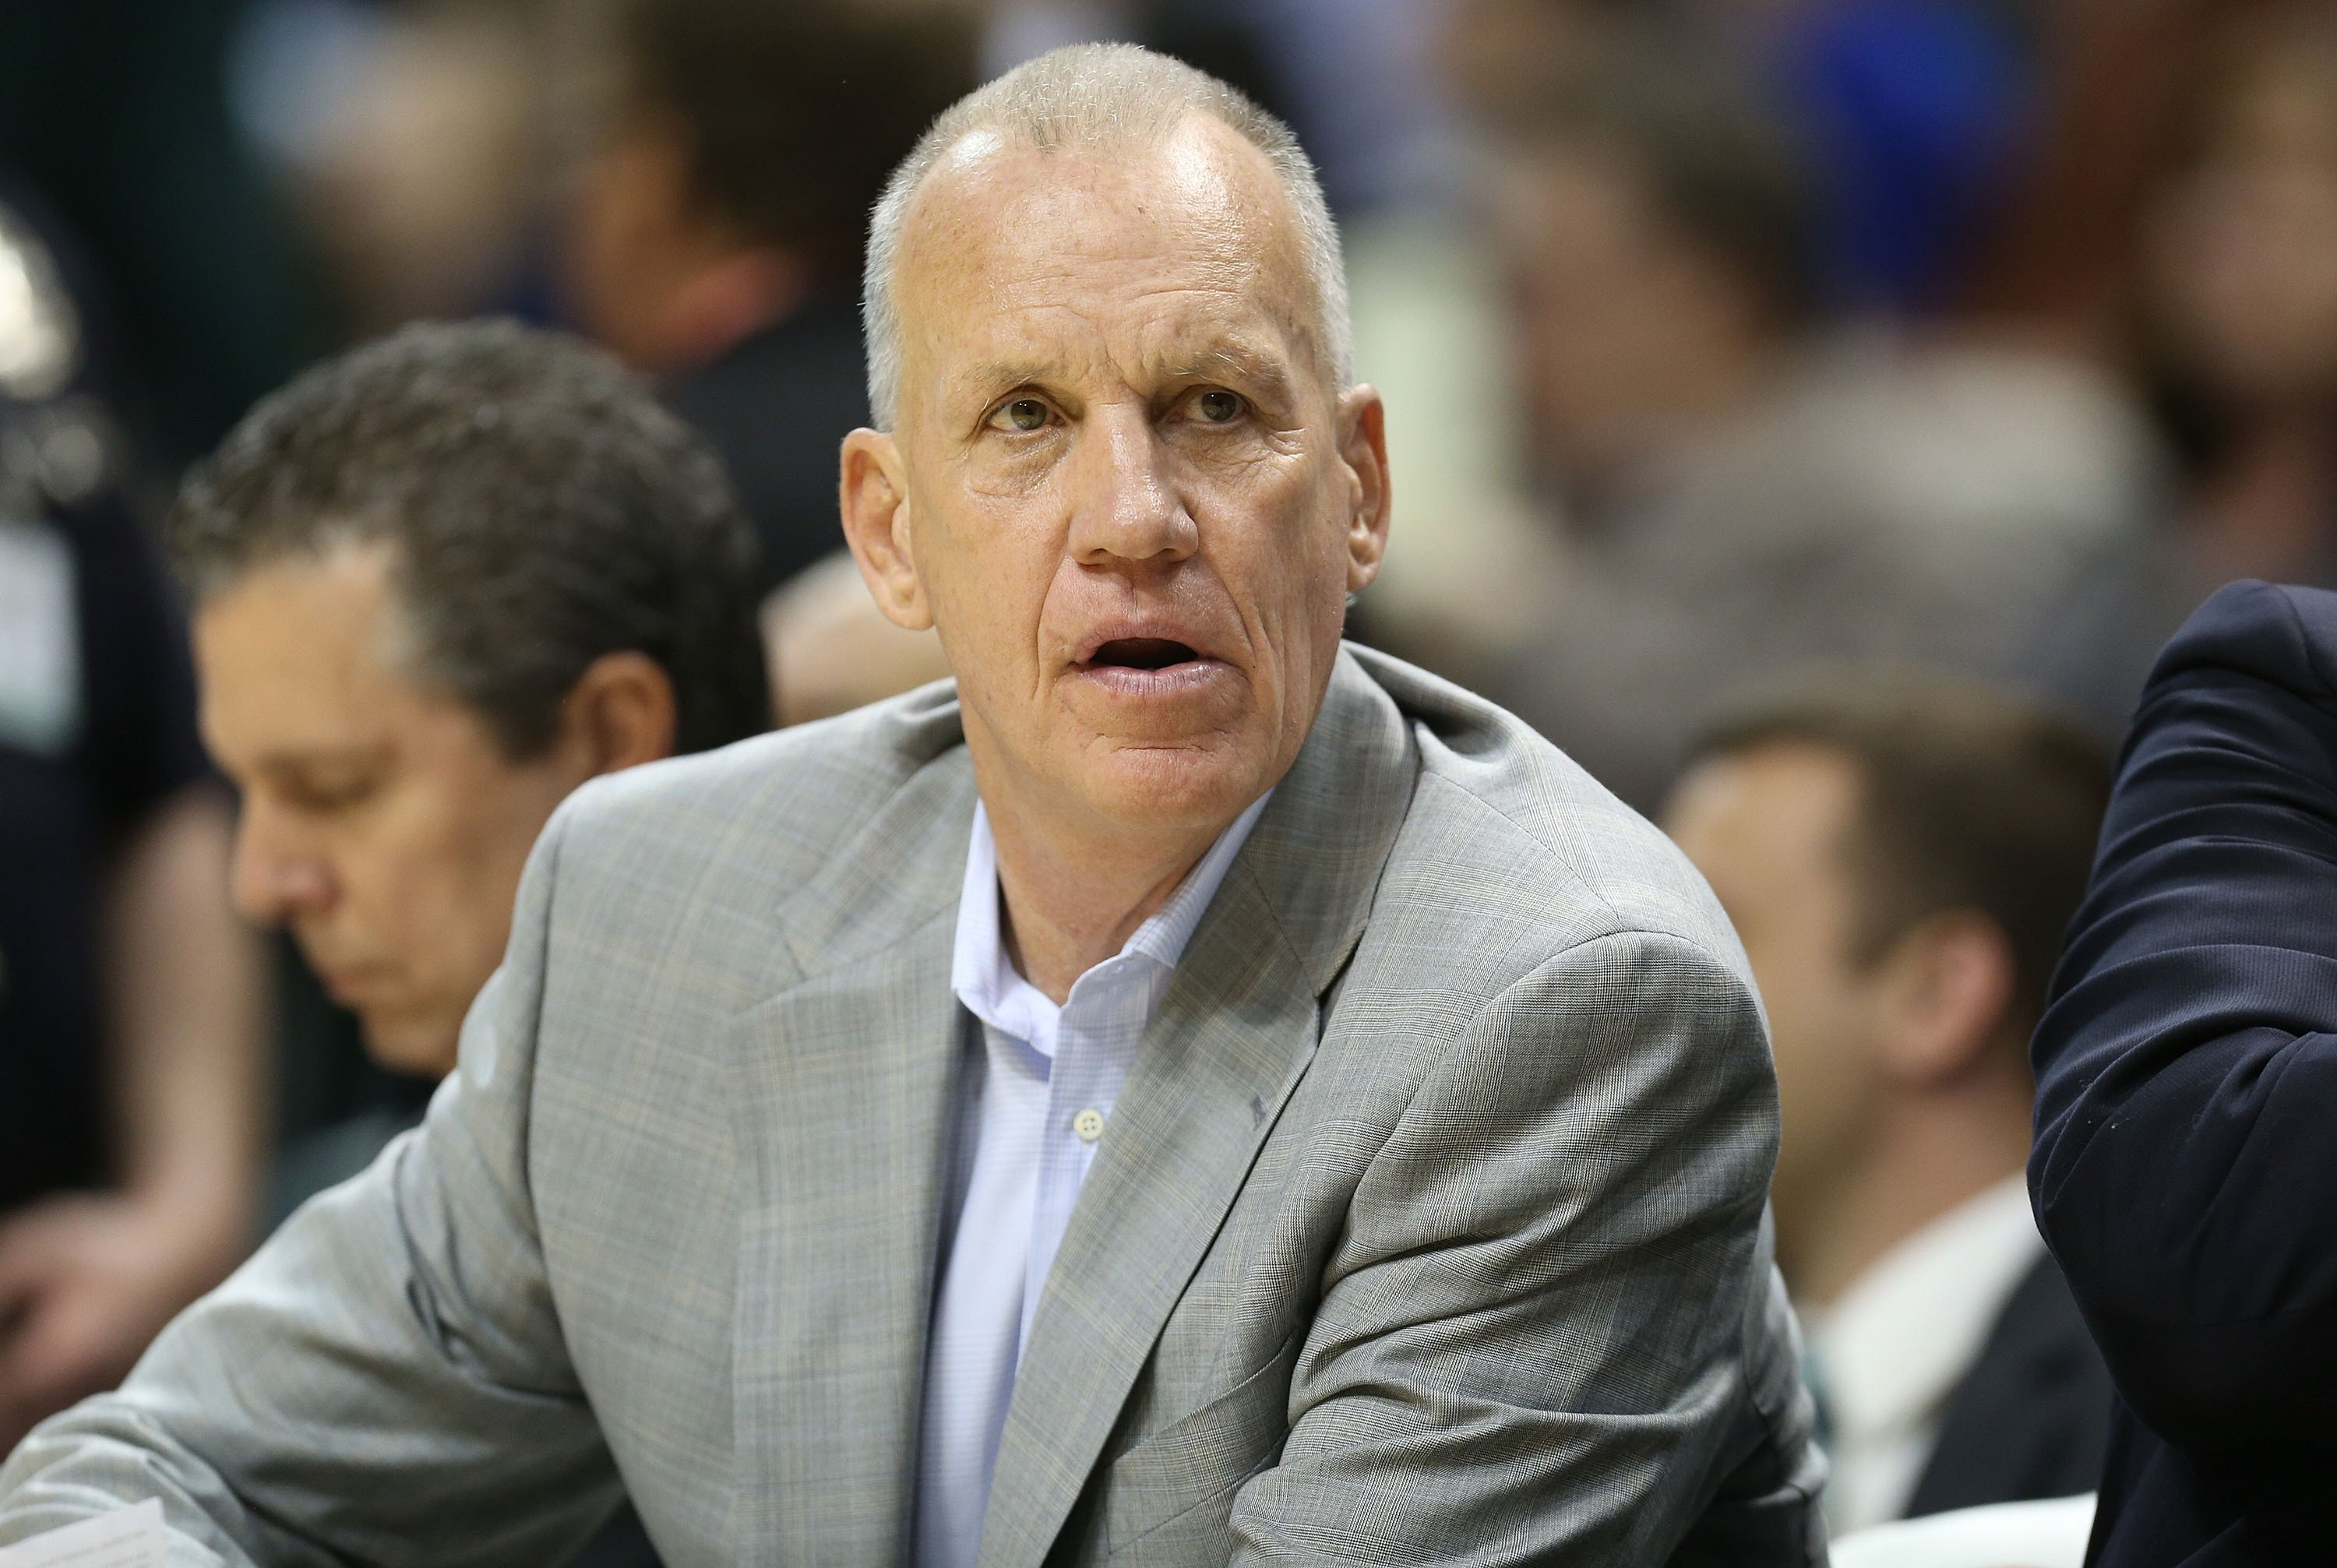 Doug Collins at Bankers Life Fieldhouse on April 17, 2013 in Indianapolis, Indiana. | Photo: Getty Images